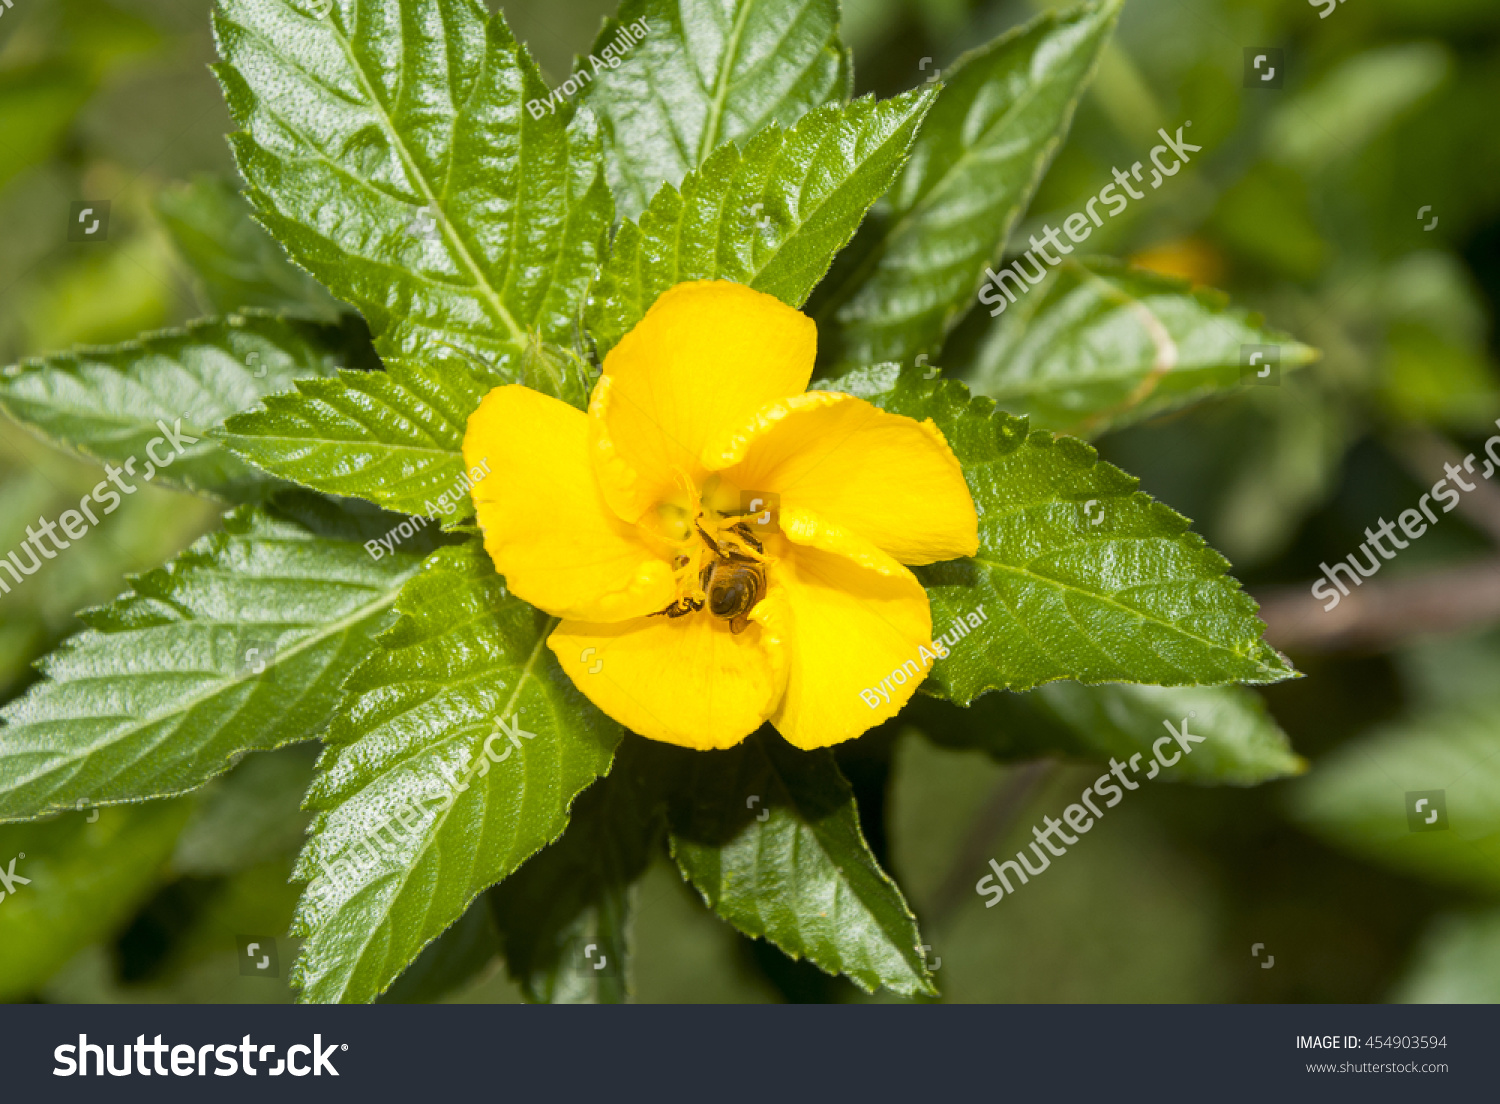 Royalty free bee on yellow sage rose flower with dew 454903594 bee on yellow sage rose flower with dew in guatemala 454903594 mightylinksfo